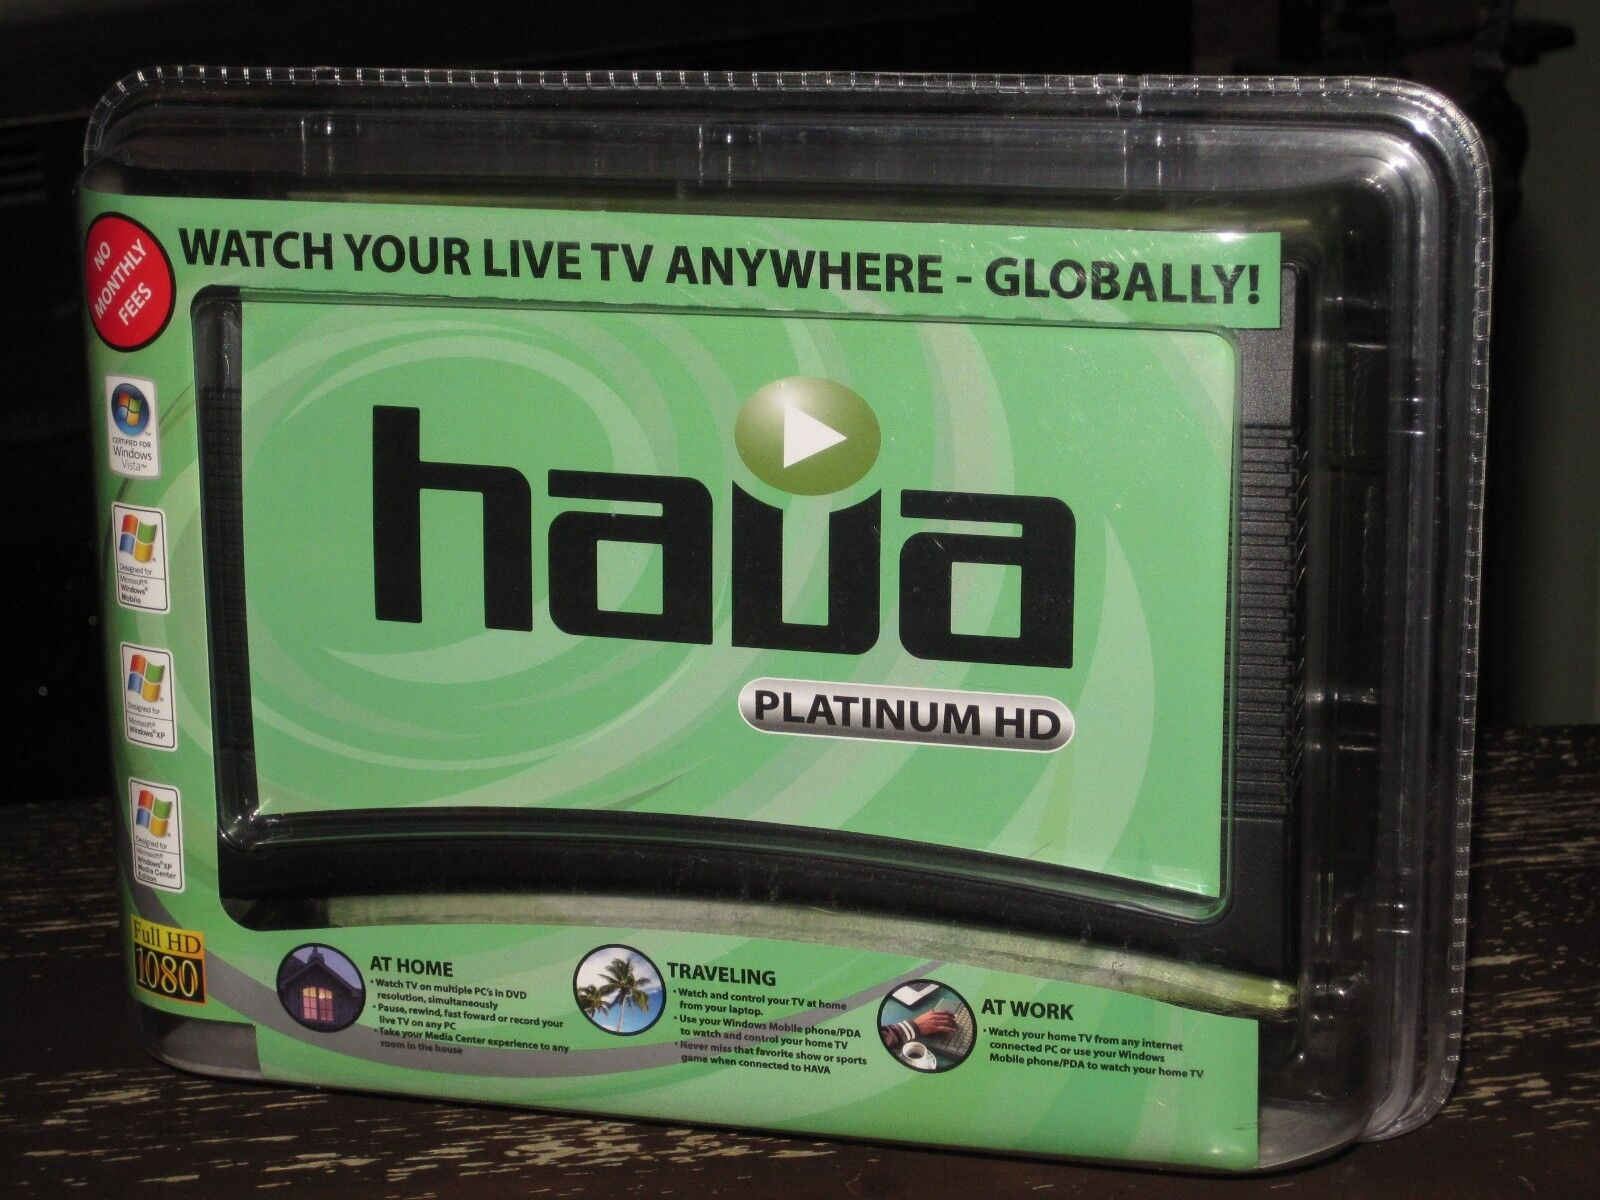 s-l1600 HAVA PLATINUM HD NO FEE MEDIA STREAMING PLAYER -- NEW IN BOX -- FREE SHIPPING!!!